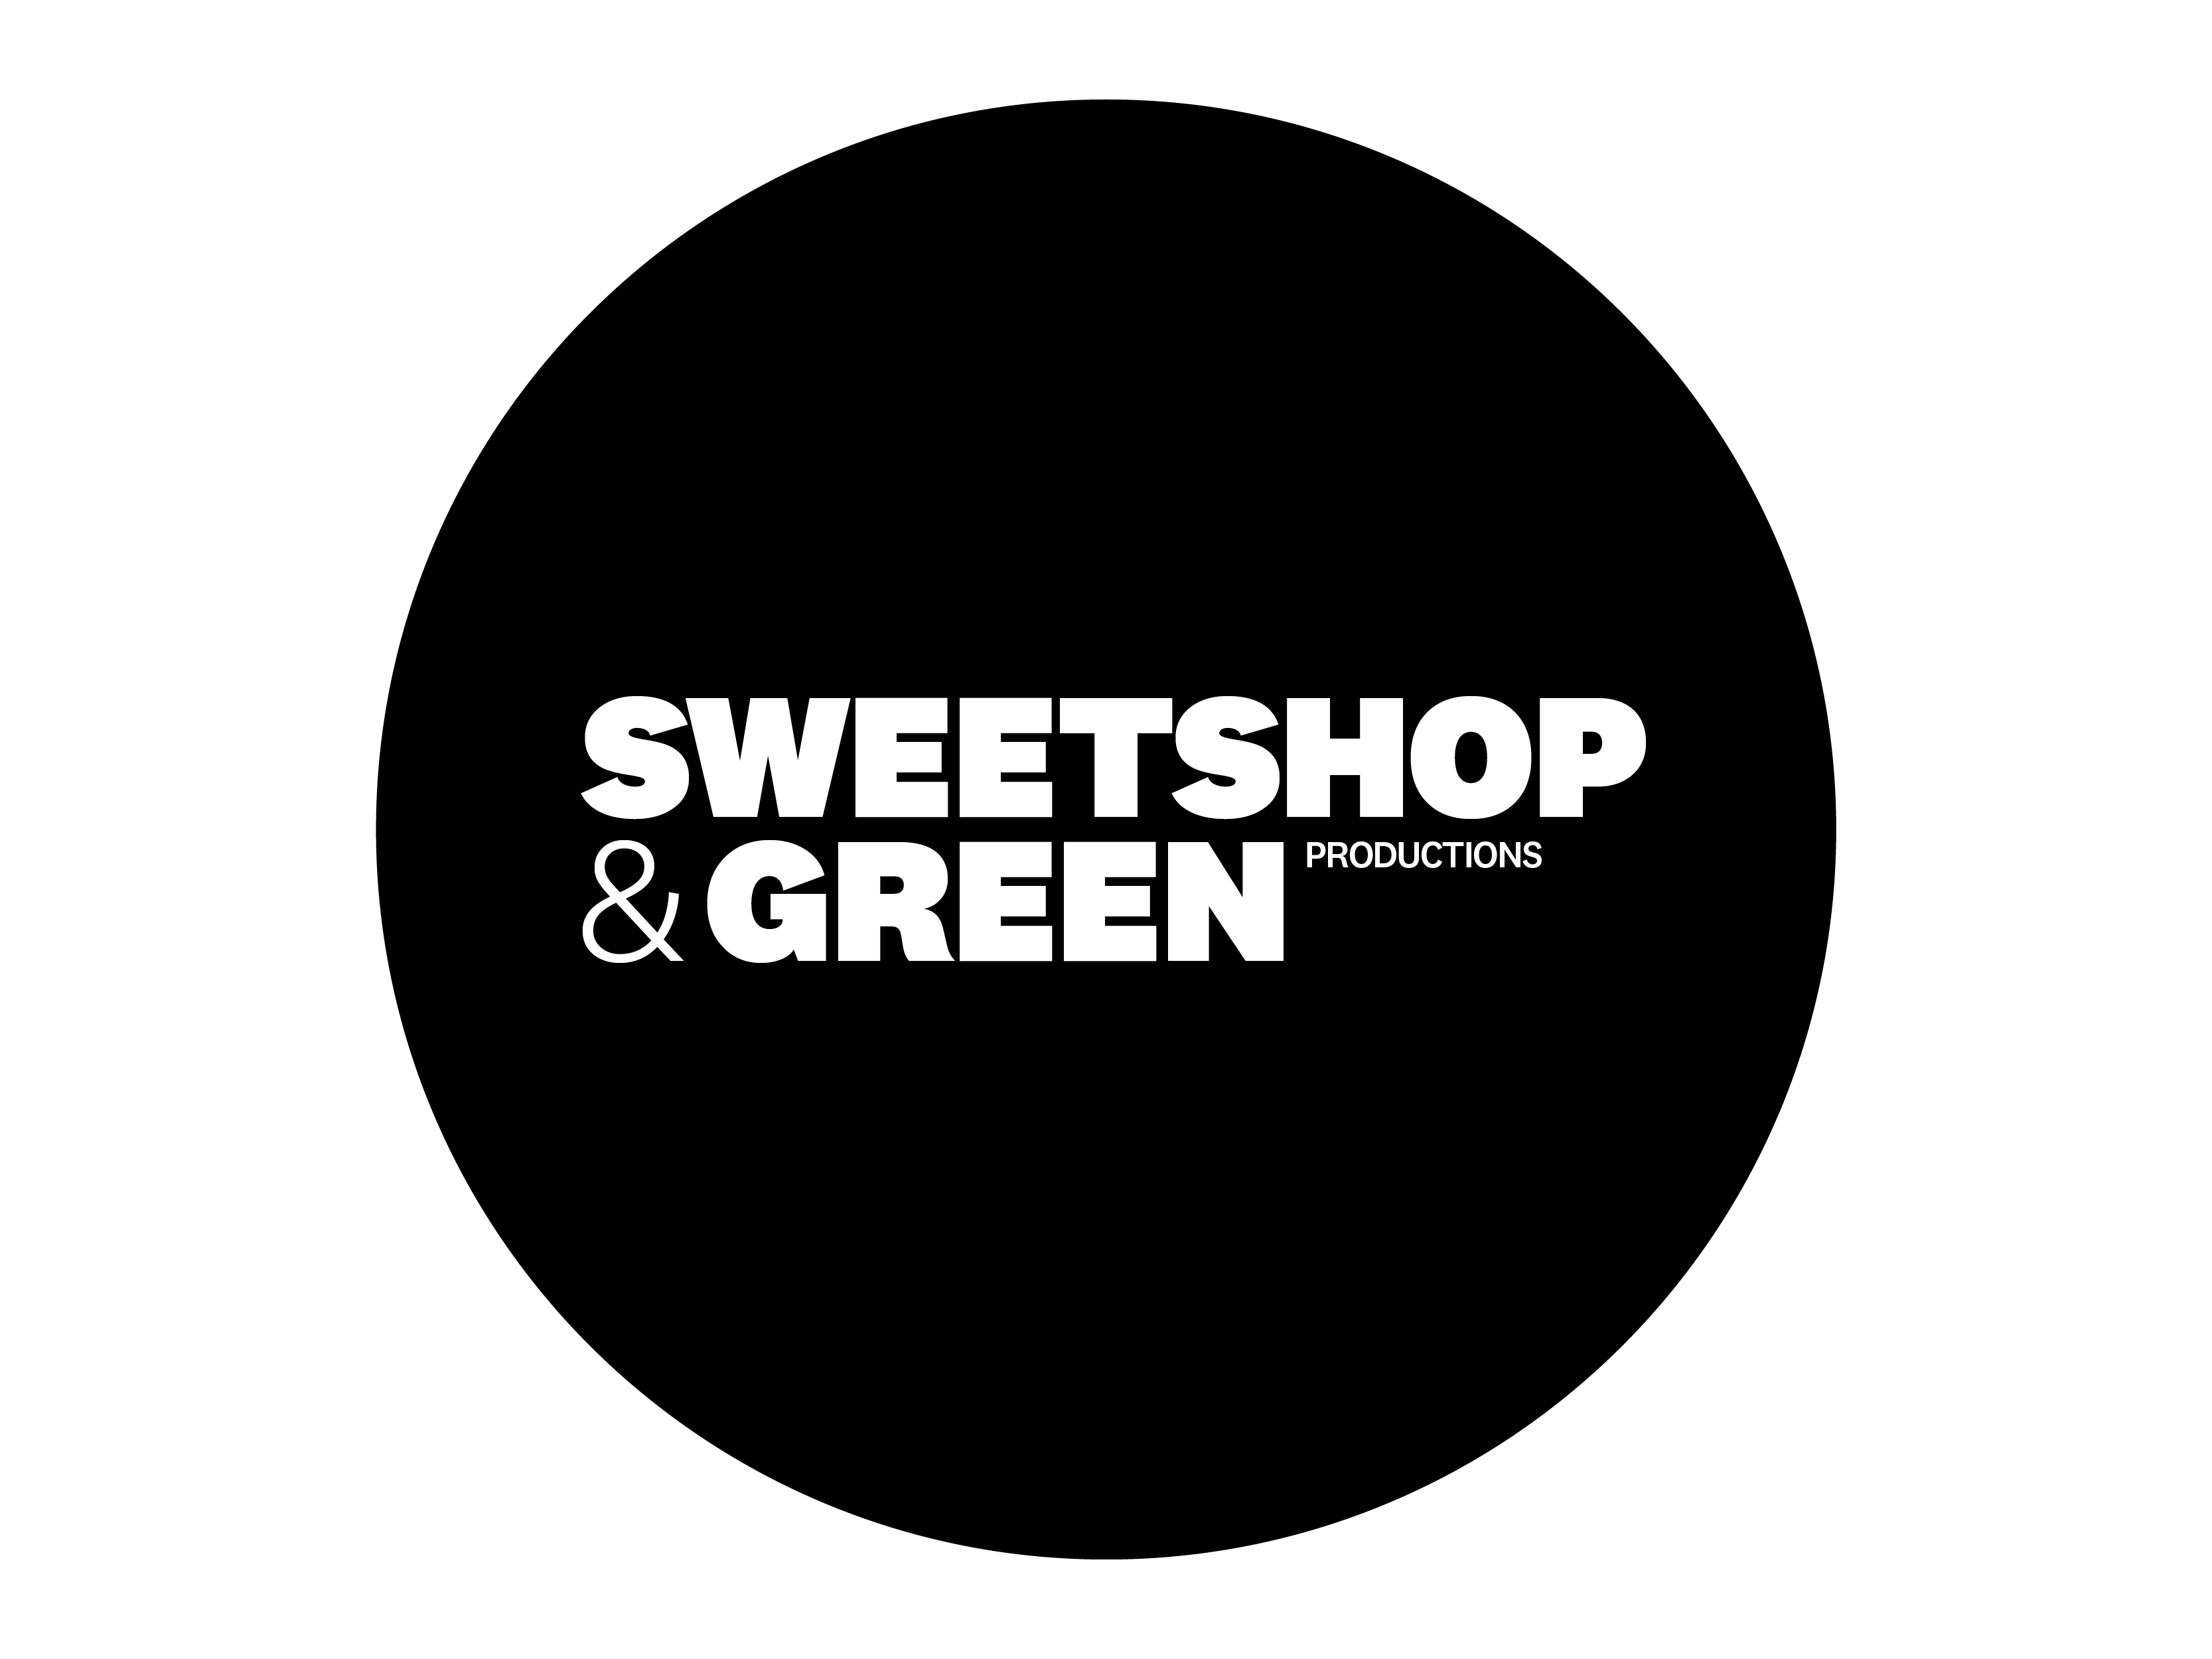 New film and TV enterprise Sweetshop & Green launches in Australia and New Zealand